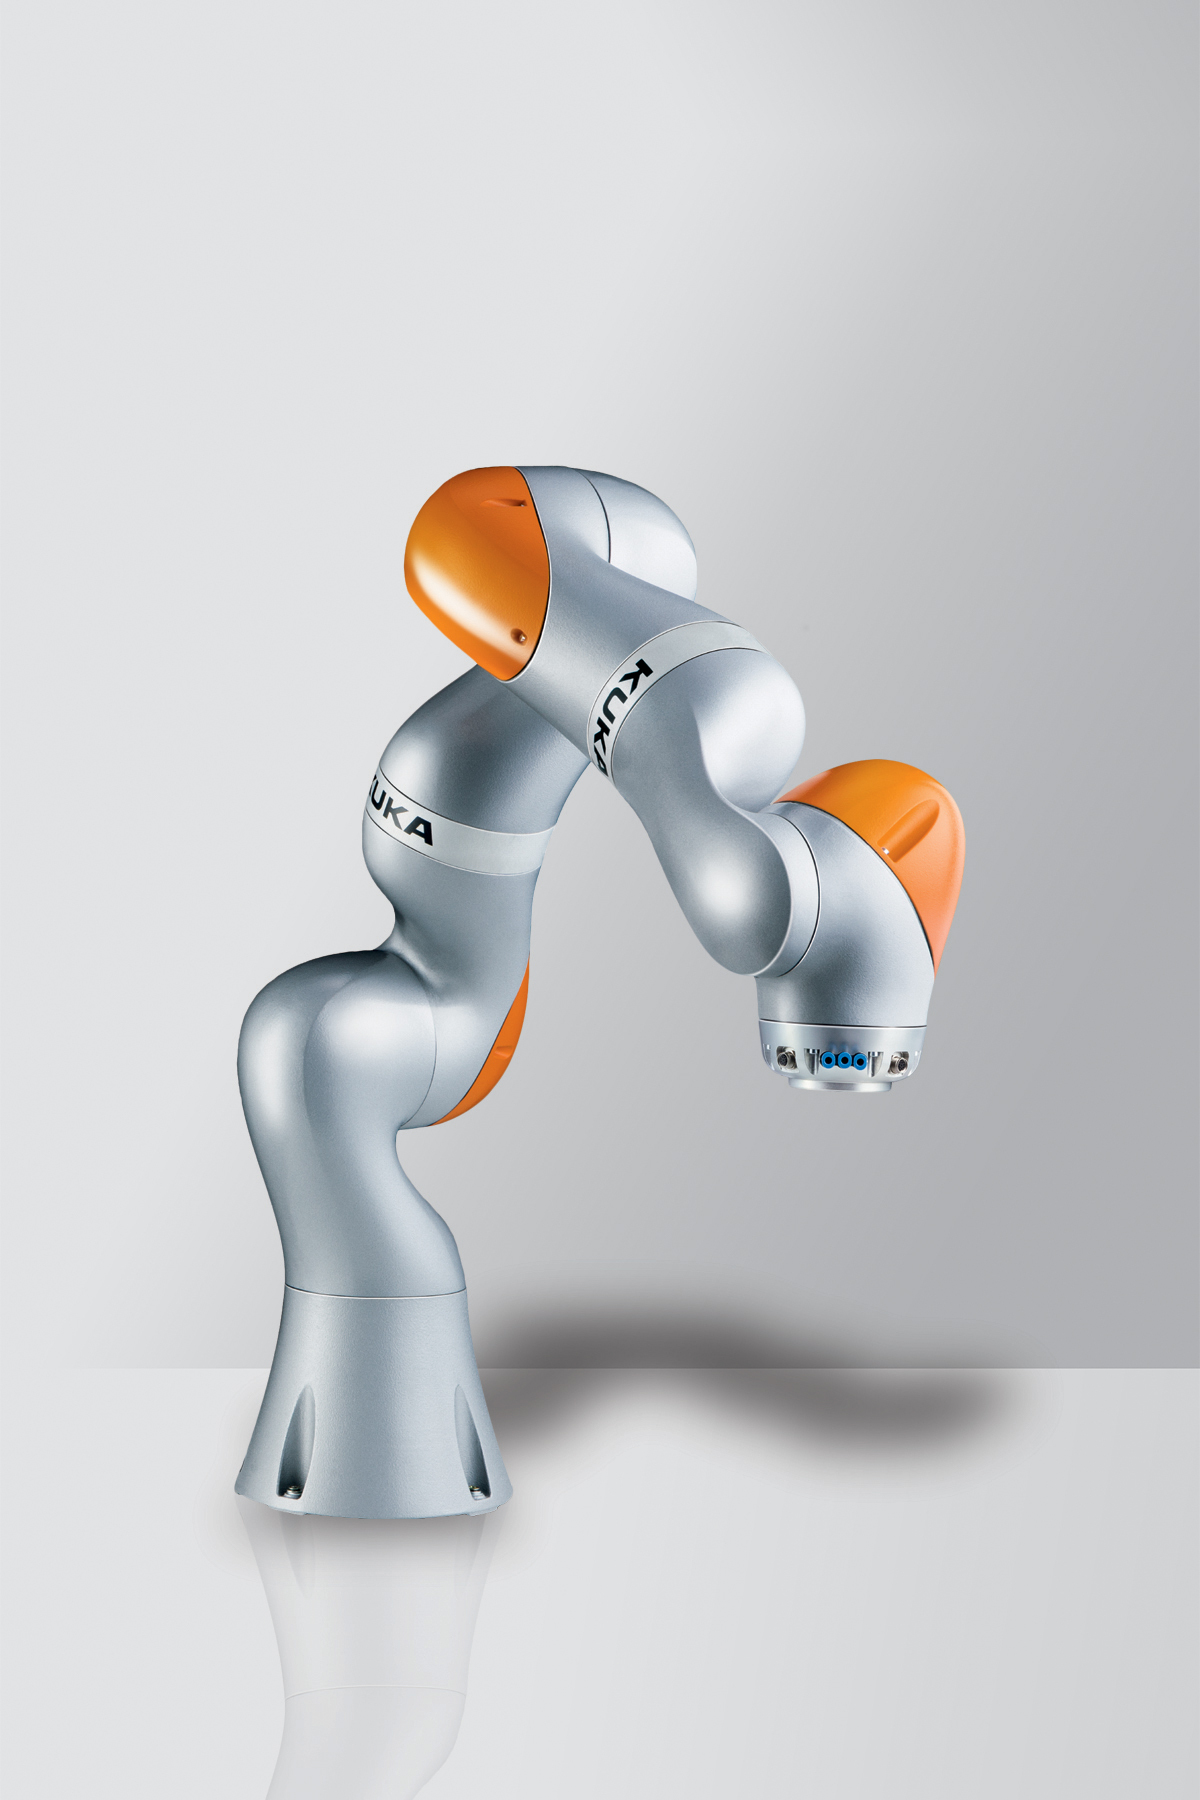 The future of manufacturing on display with KUKA Robotics